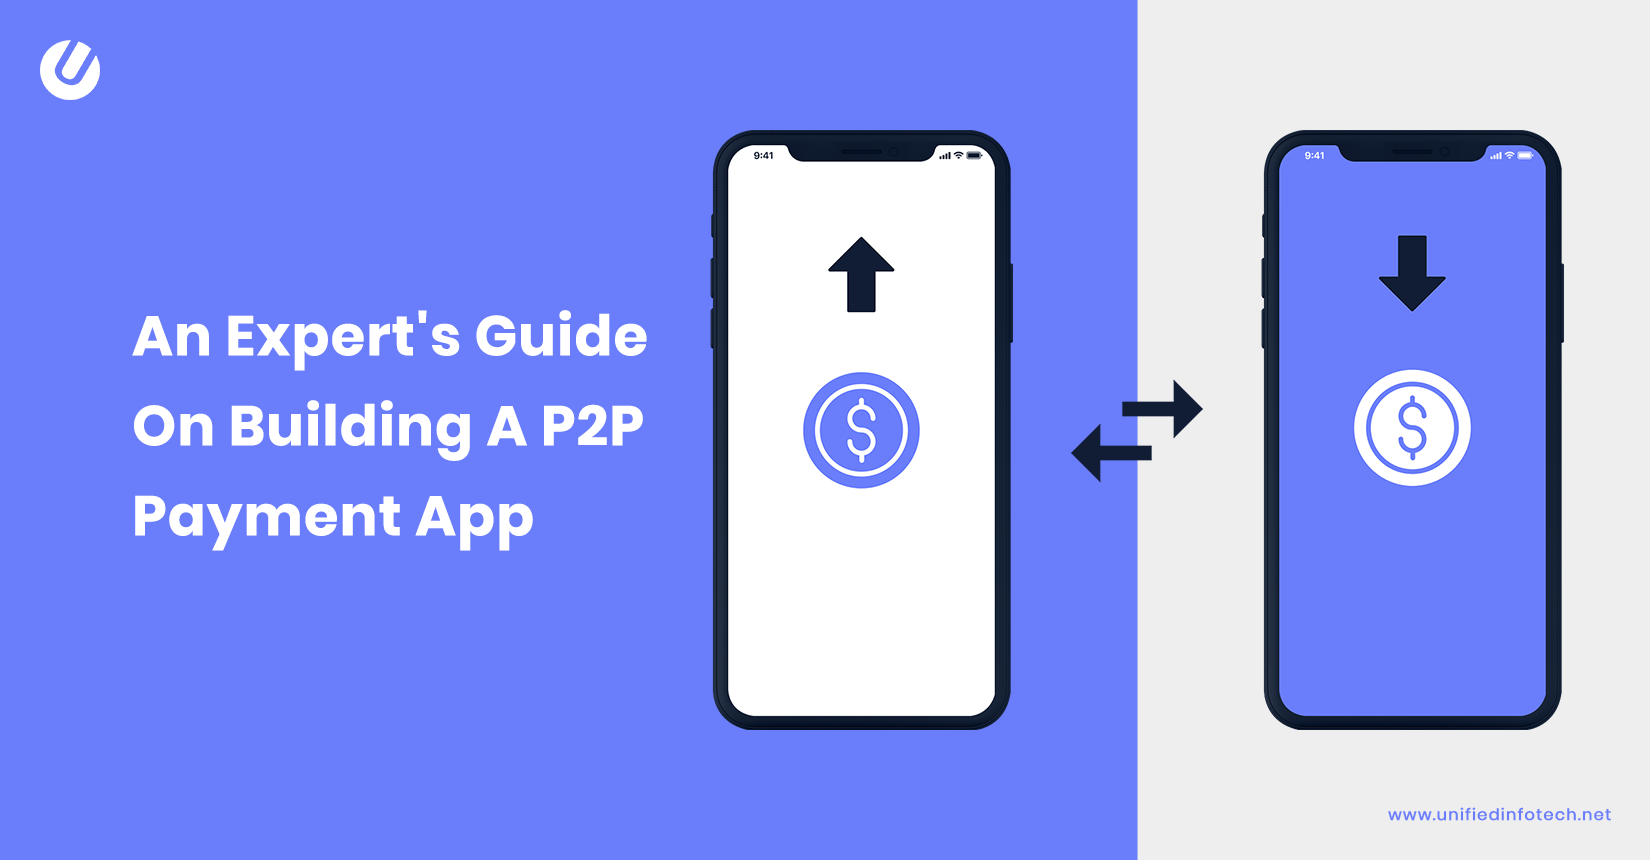 How To Build a P2P Payment App - The Easy Shortcuts to Know